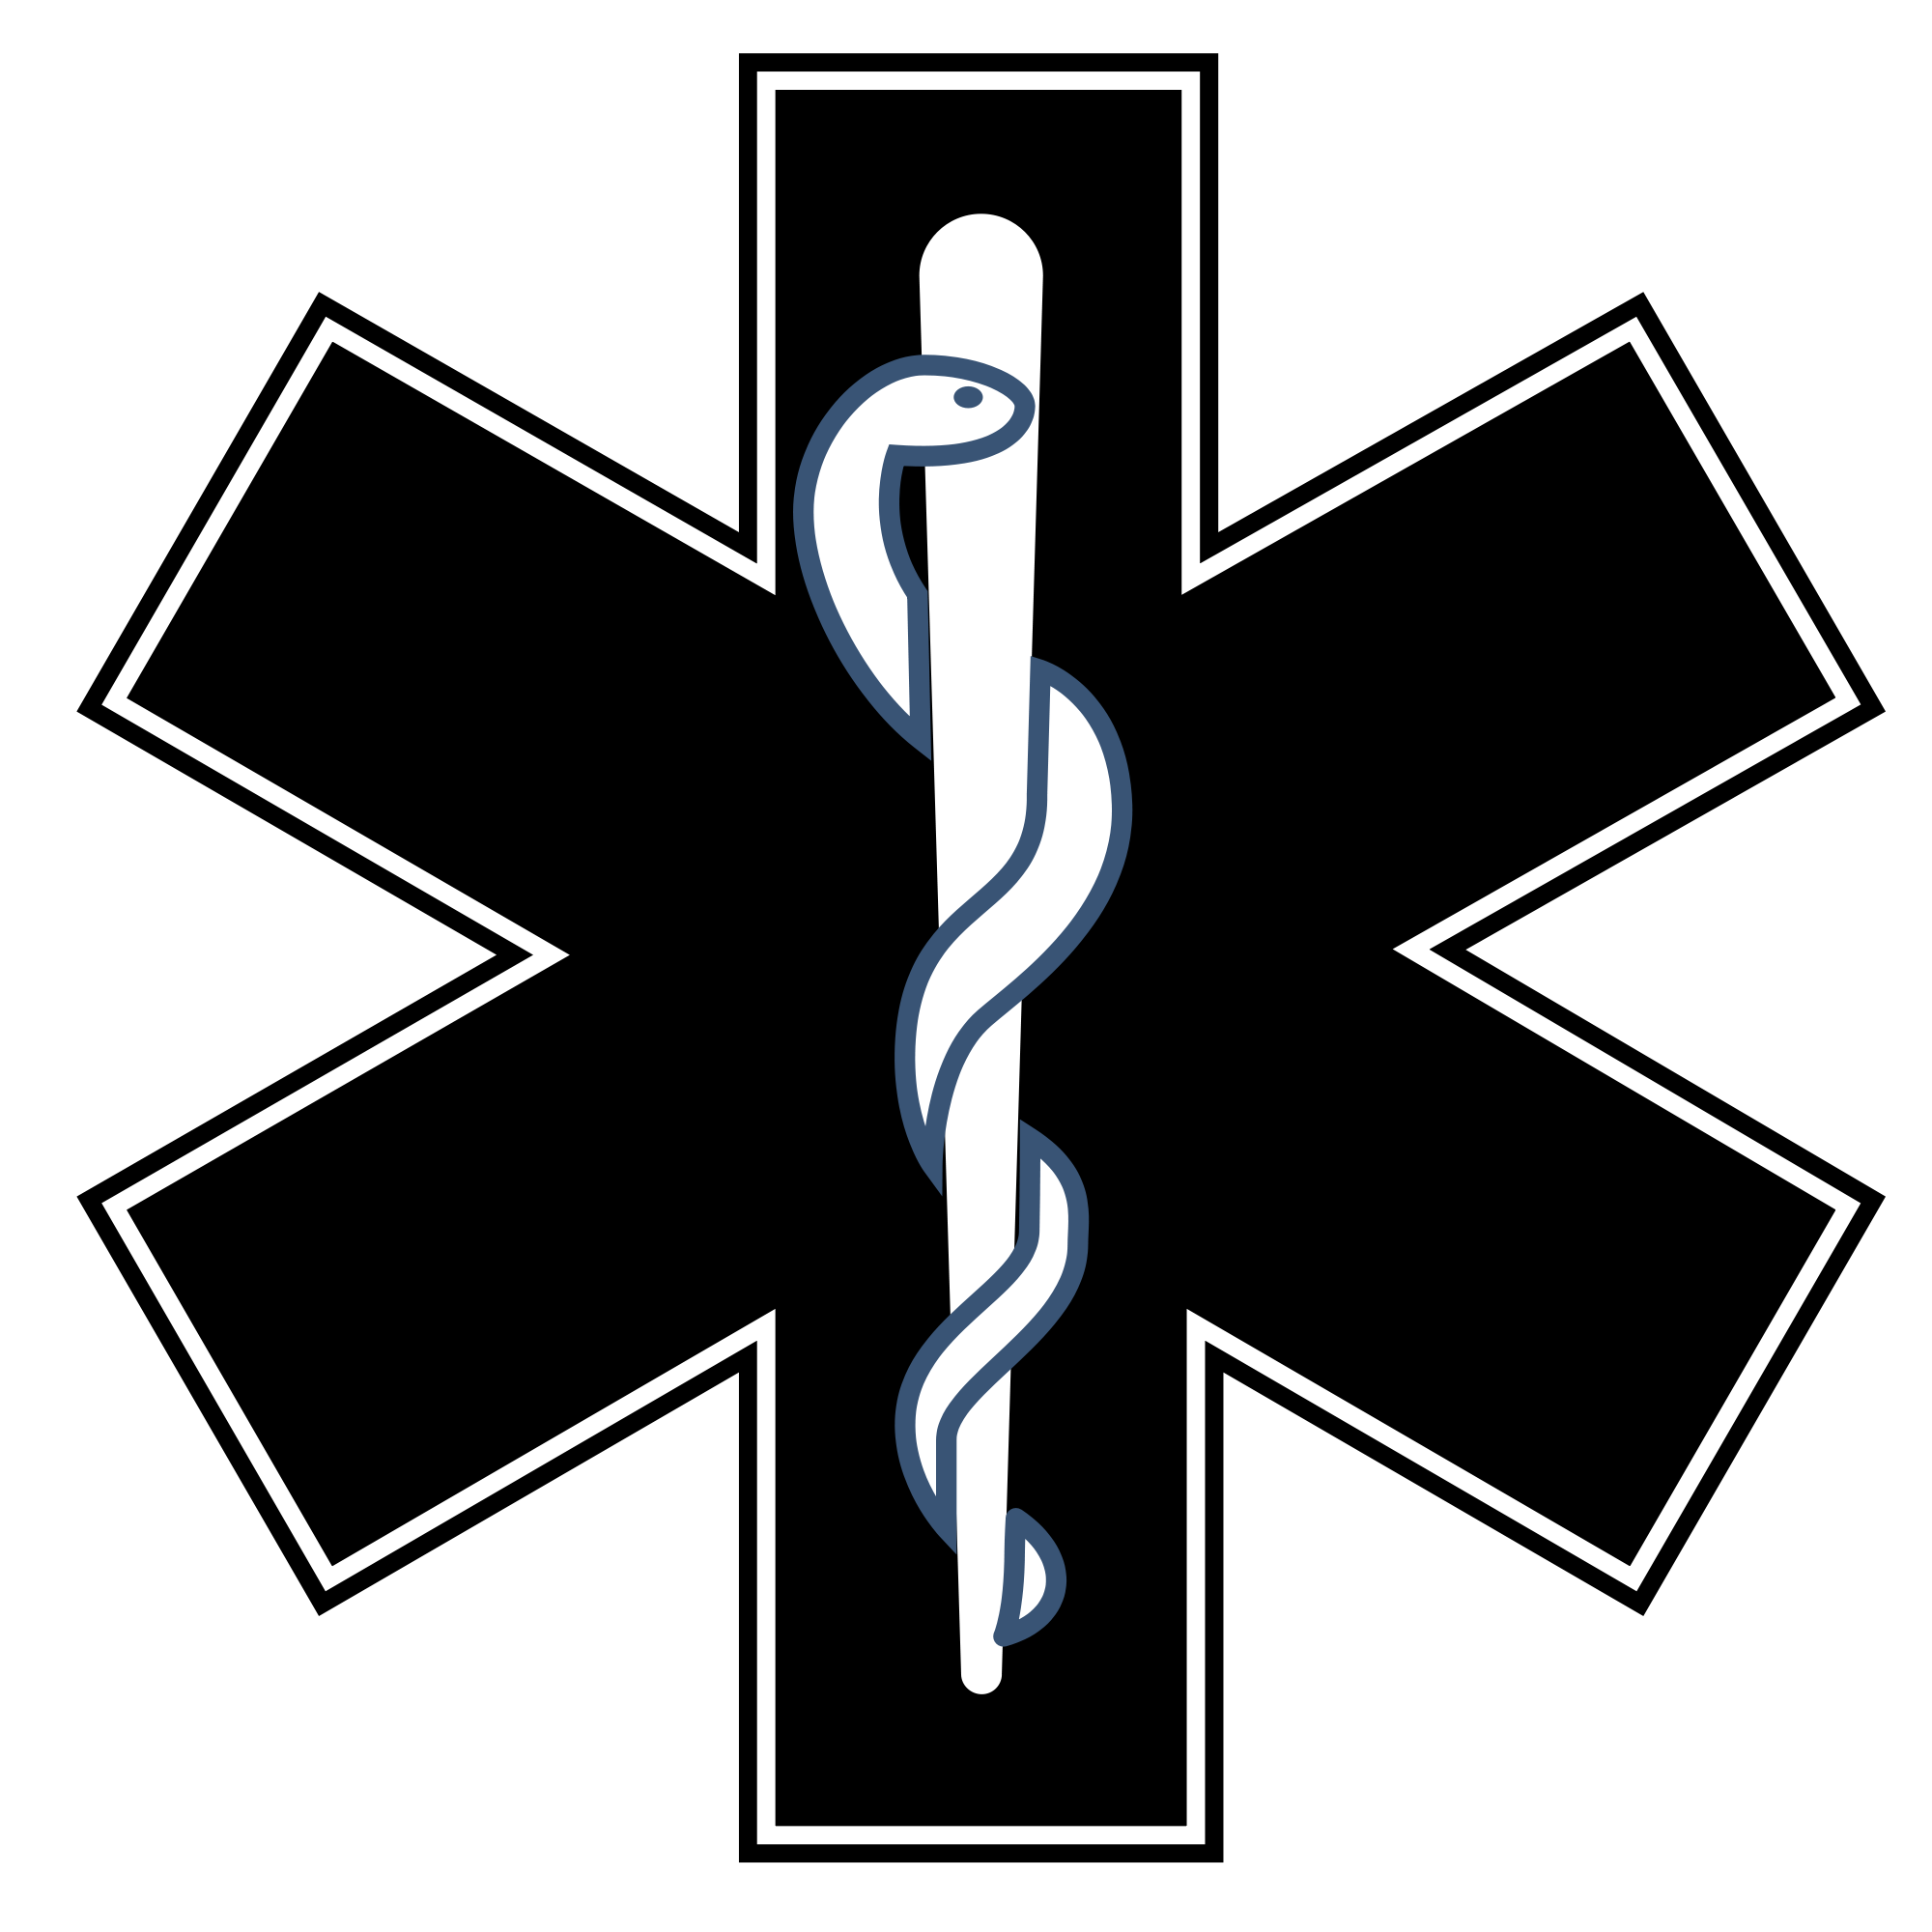 Star of life black and white clipart graphic free File:Gatunek leczniczy black and white.svg - Wikimedia Commons graphic free